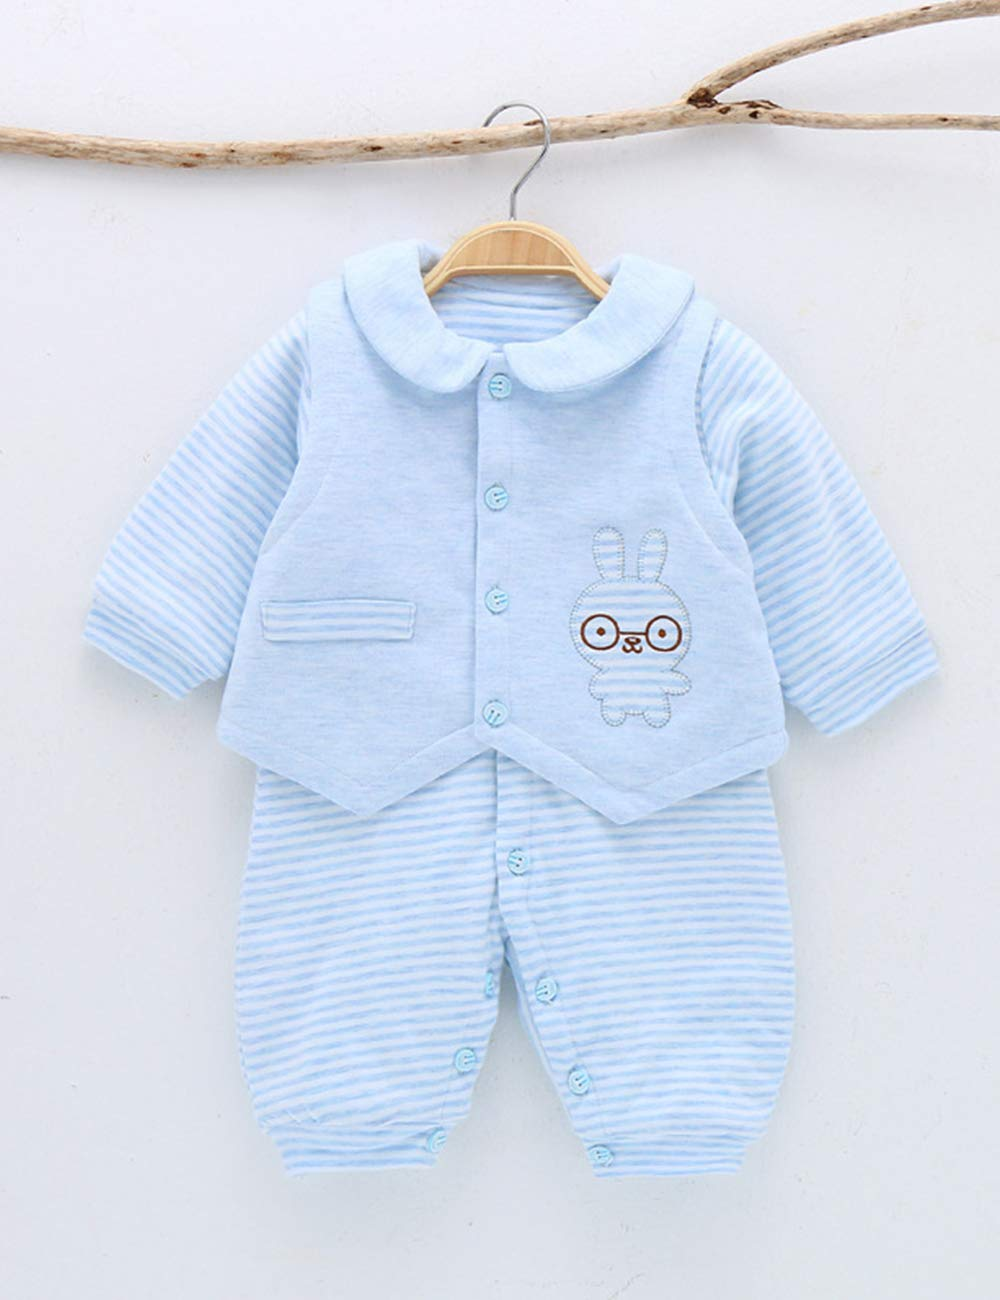 acadfdf8cd58 Zhhyltt Baby Crawler Suits Cotton Long Sleeve Outfits Button ...